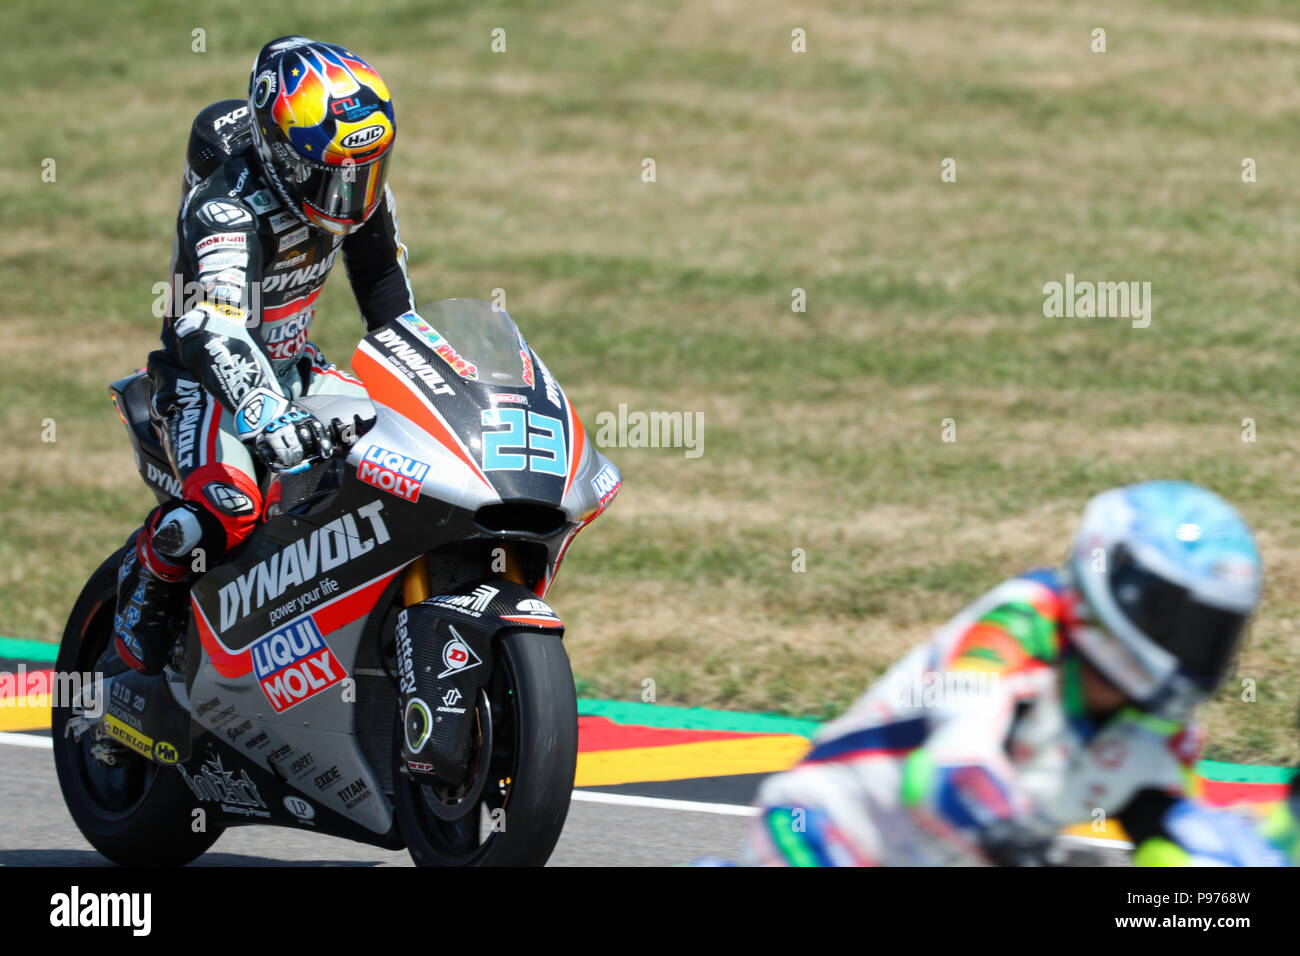 Hohenstein-Ernstthal, Germany. 15th July, 2018. German motorcycle Grand Prix, Moto2 at the Sachsenring: Marcel Schroetter (Germany, Dynavolt Intact GP). Credit: Jan Woitas/dpa-Zentralbild/dpa/Alamy Live News - Stock Image